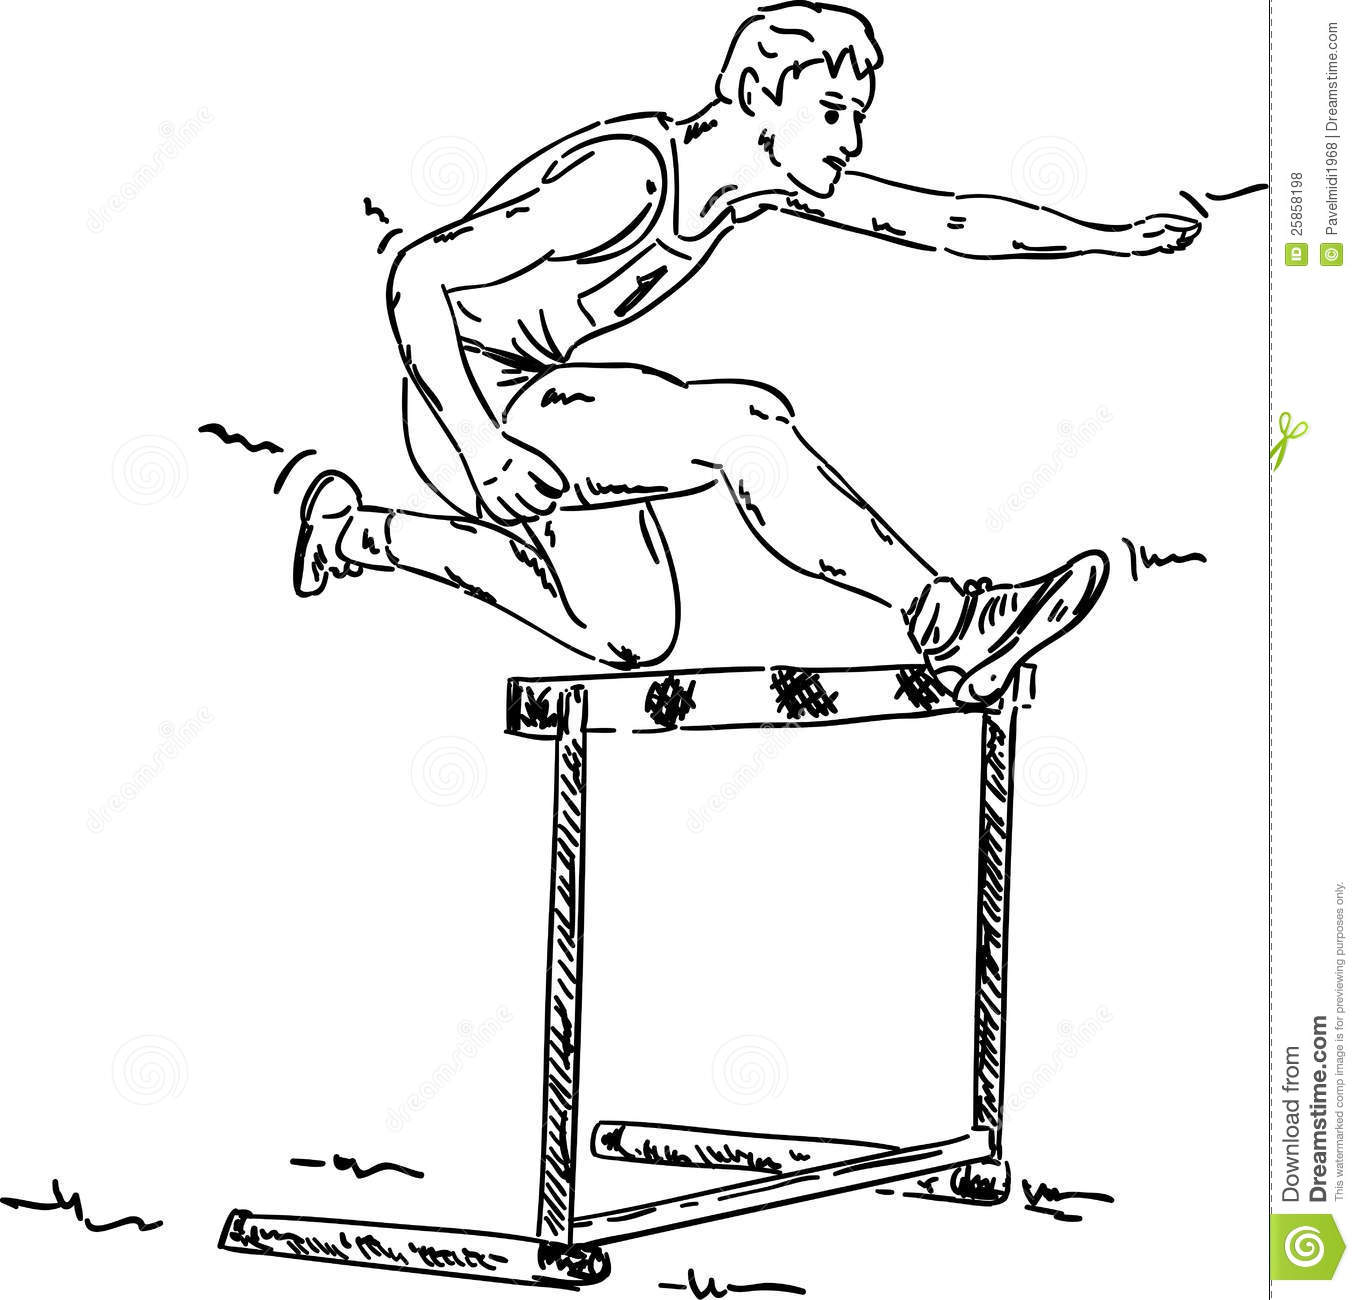 Male In A Hurdle Race Royalty Free Stock Photos